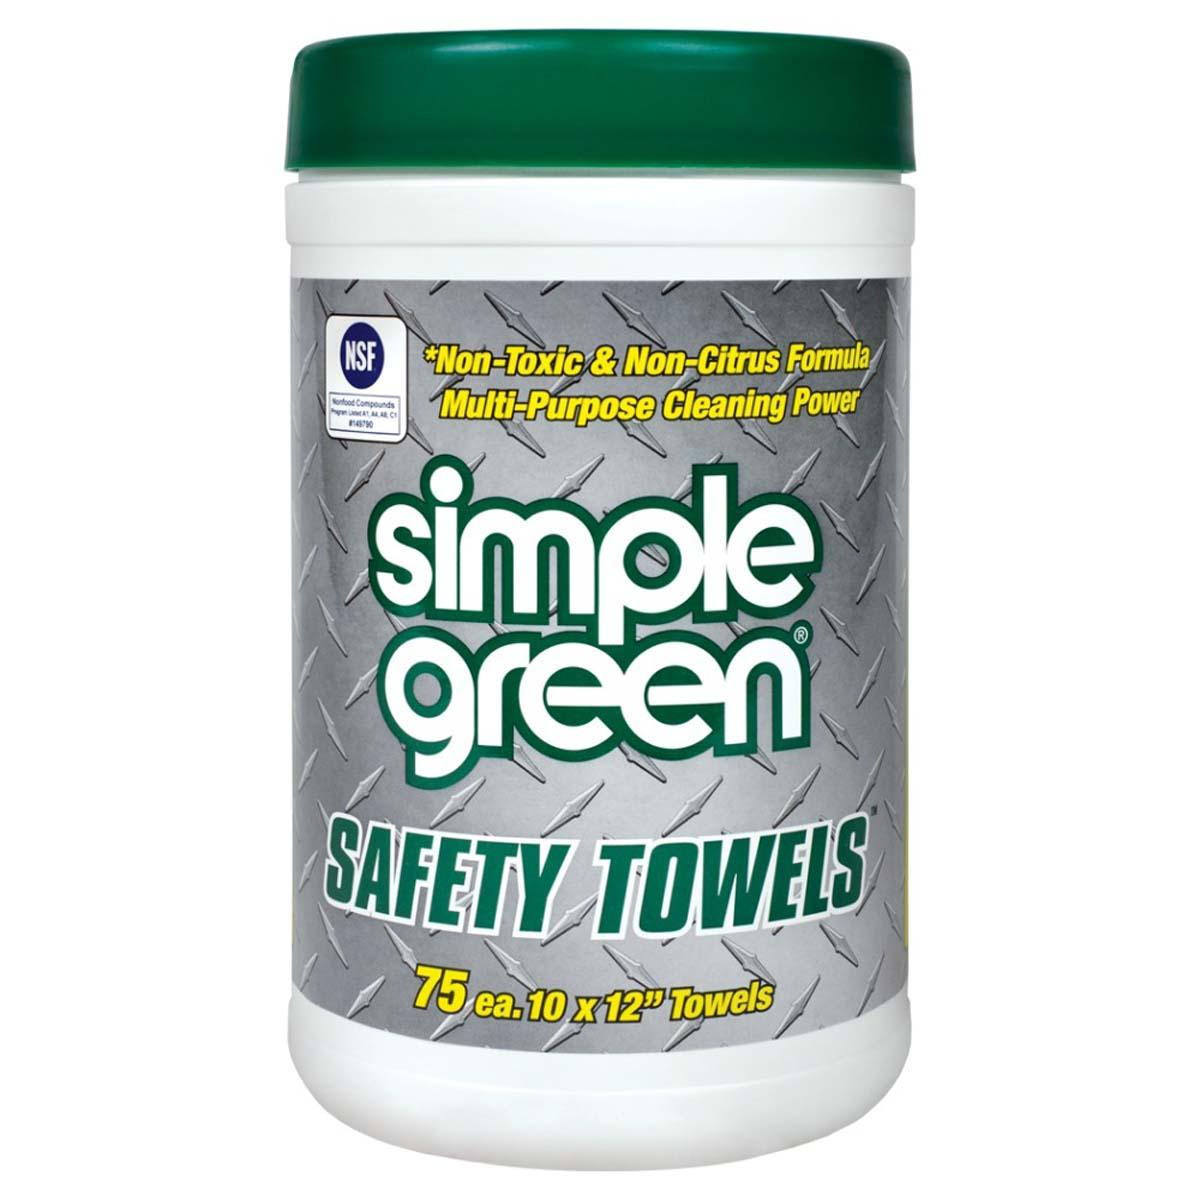 Safety Towels 75 ct.